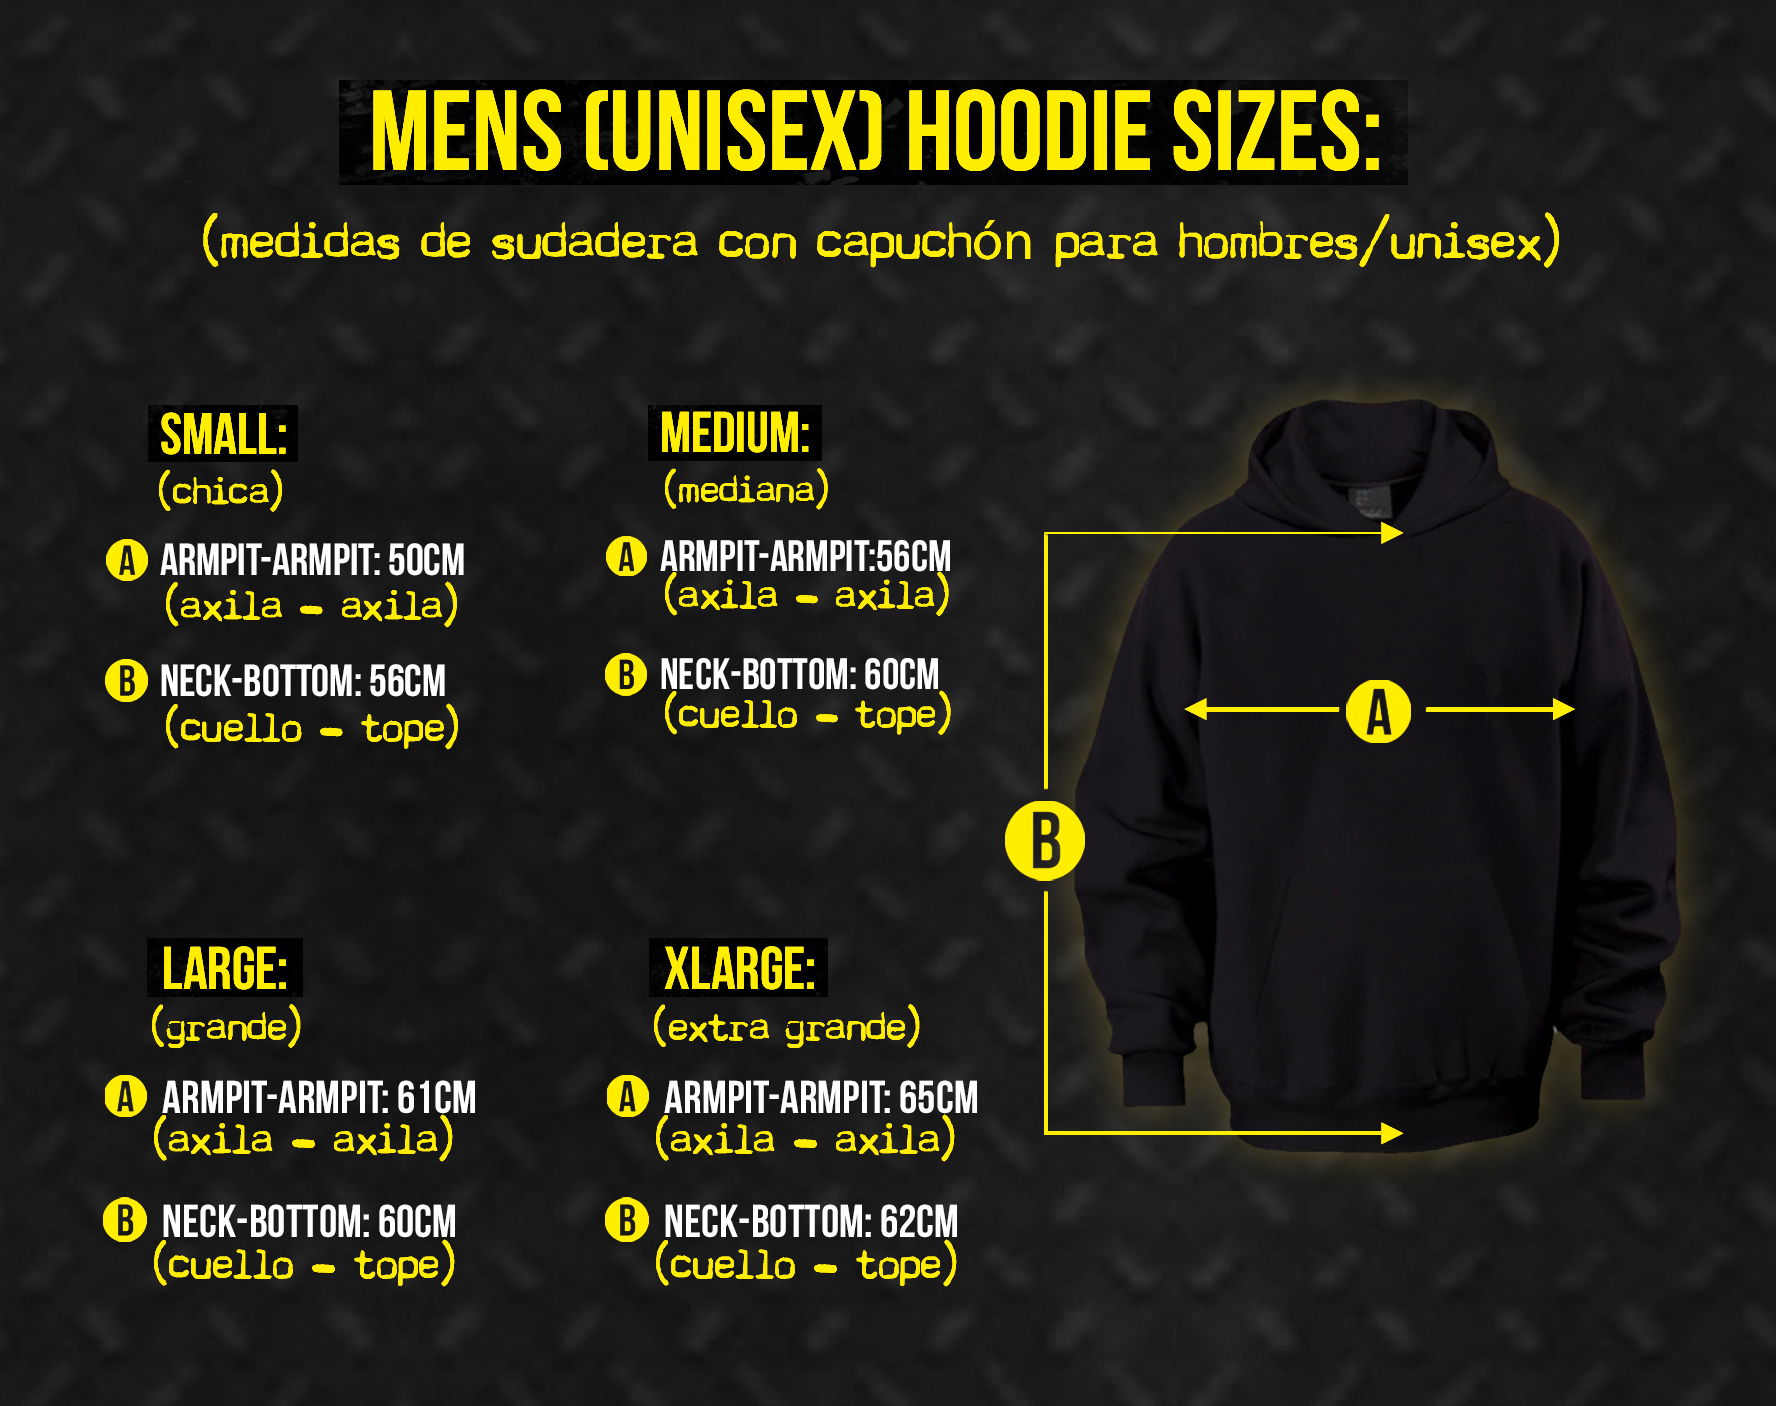 mens-unisex-hoodies-sizes.jpg